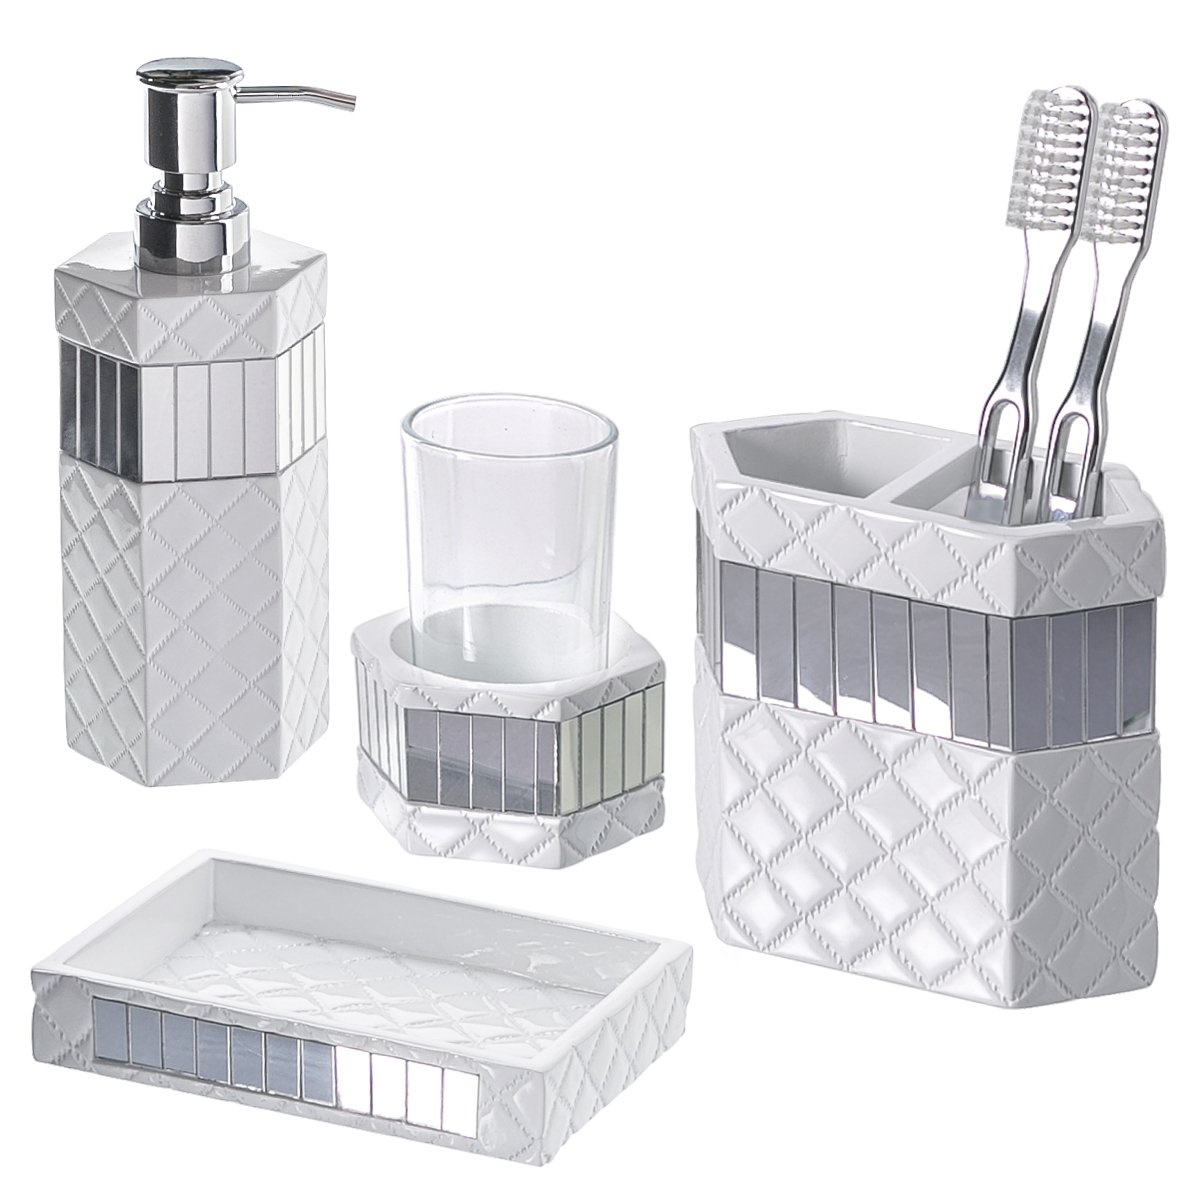 Shop bathroom accessories - Amazon Com Creative Scents Quilted Mirror Bathroom Accessories Set 4 Piece Includes Soap Dispenser Toothbrush Holder Tumbler Soap Dish Gift Package